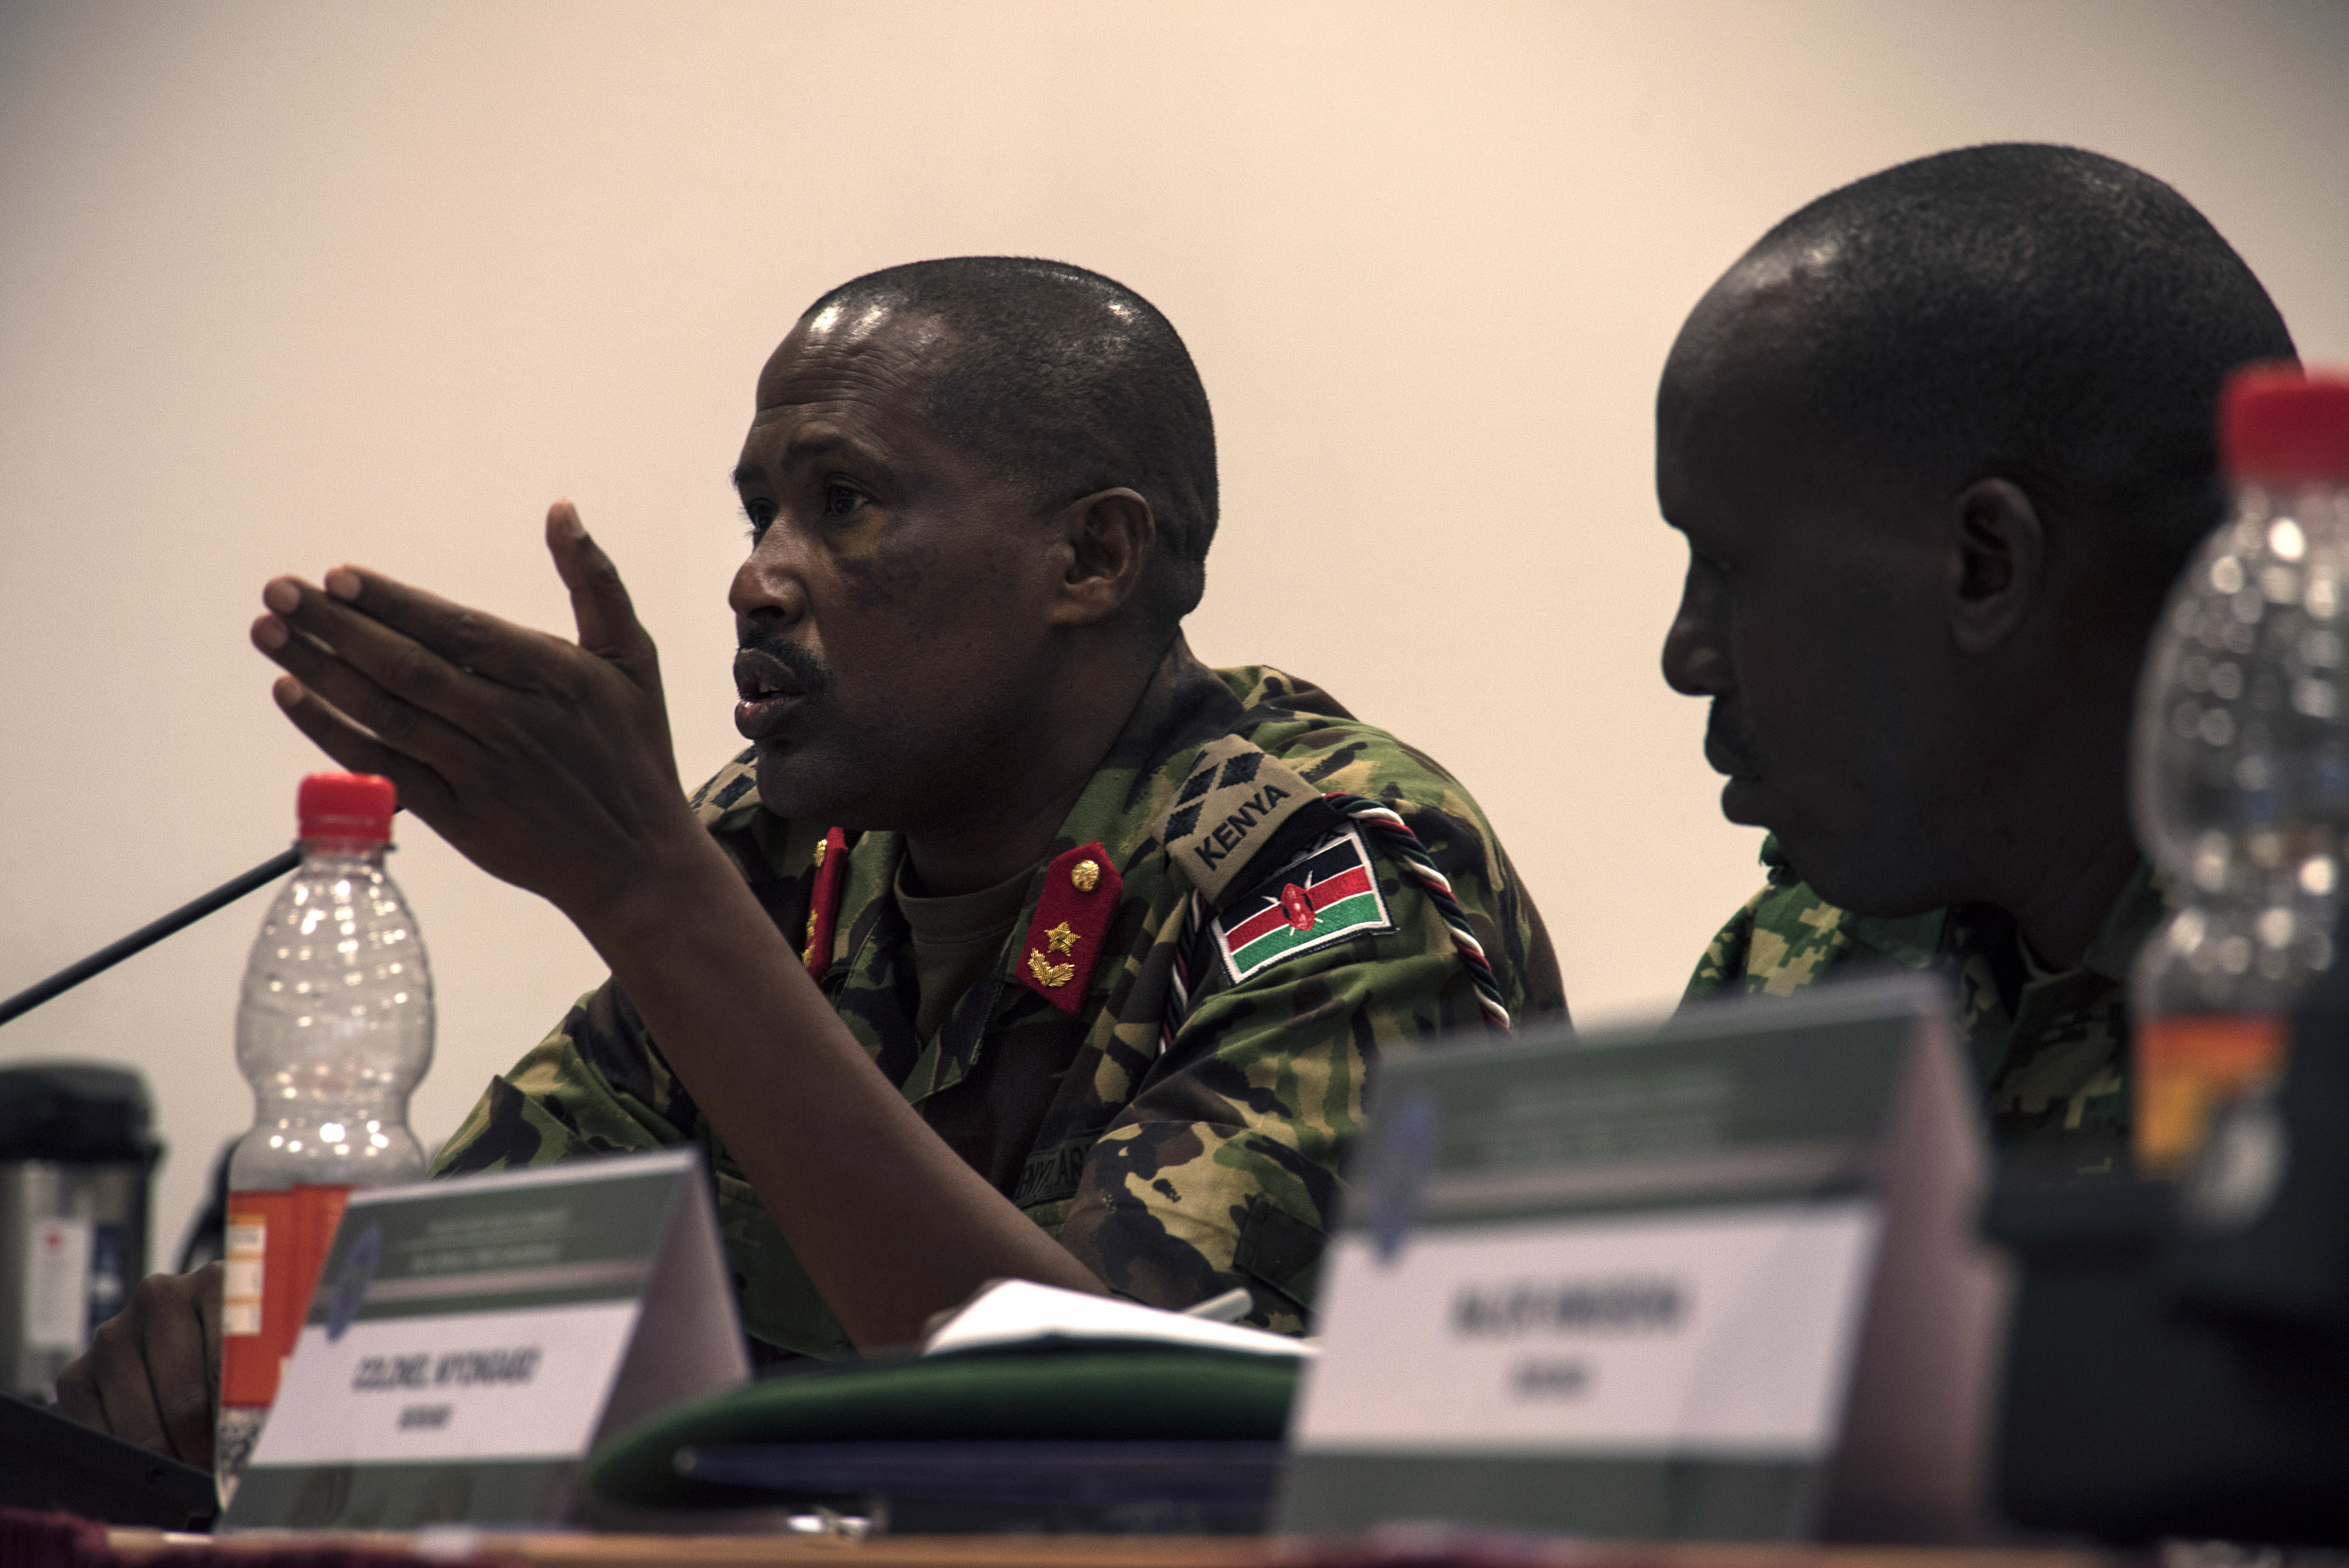 Kenyan Brig. Gen. Fredrick Leuria, deputy director of military intelligence at the Kenyan defense headquarters, speaks during one of the open discussions at the 2019 East Africa Directors of Military Intelligence Conference April 3, 2019 in Stuttgart, Germany. This year 34 representatives from 10 African partners along with representatives from Europe, the U.S. and Canada attended the intelligence conference. (U.S. Navy photo by Mass Communication Specialist 1st Class Christopher Hurd/Released)